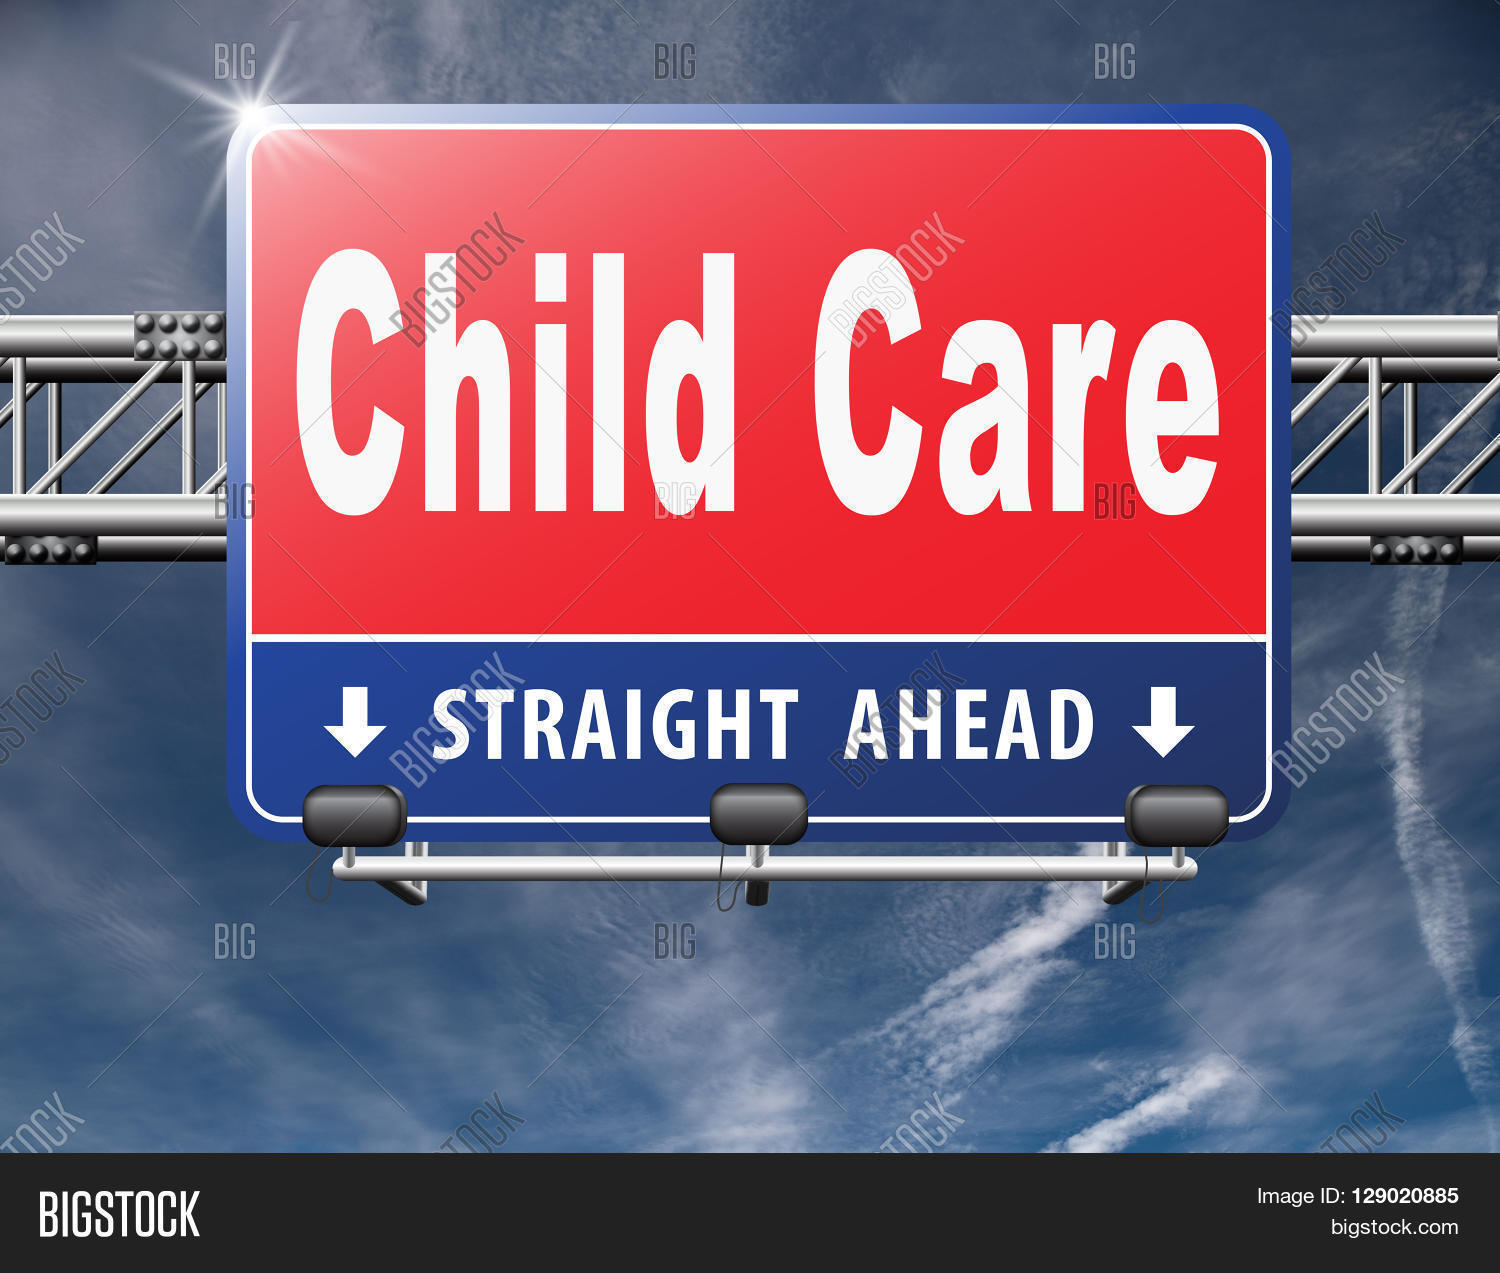 abuse,activities,au,au-pair,baby,babysitter,babysitting,billboard,care,child,childcare,creche,day,daycare,educate,education,educational,elementary,infant,kindergarten,letters,nanny,newborn,nobody,opportunity,pair,parent,parenting,play,playtime,preschool,protection,road,service,sign,supervising,text,word